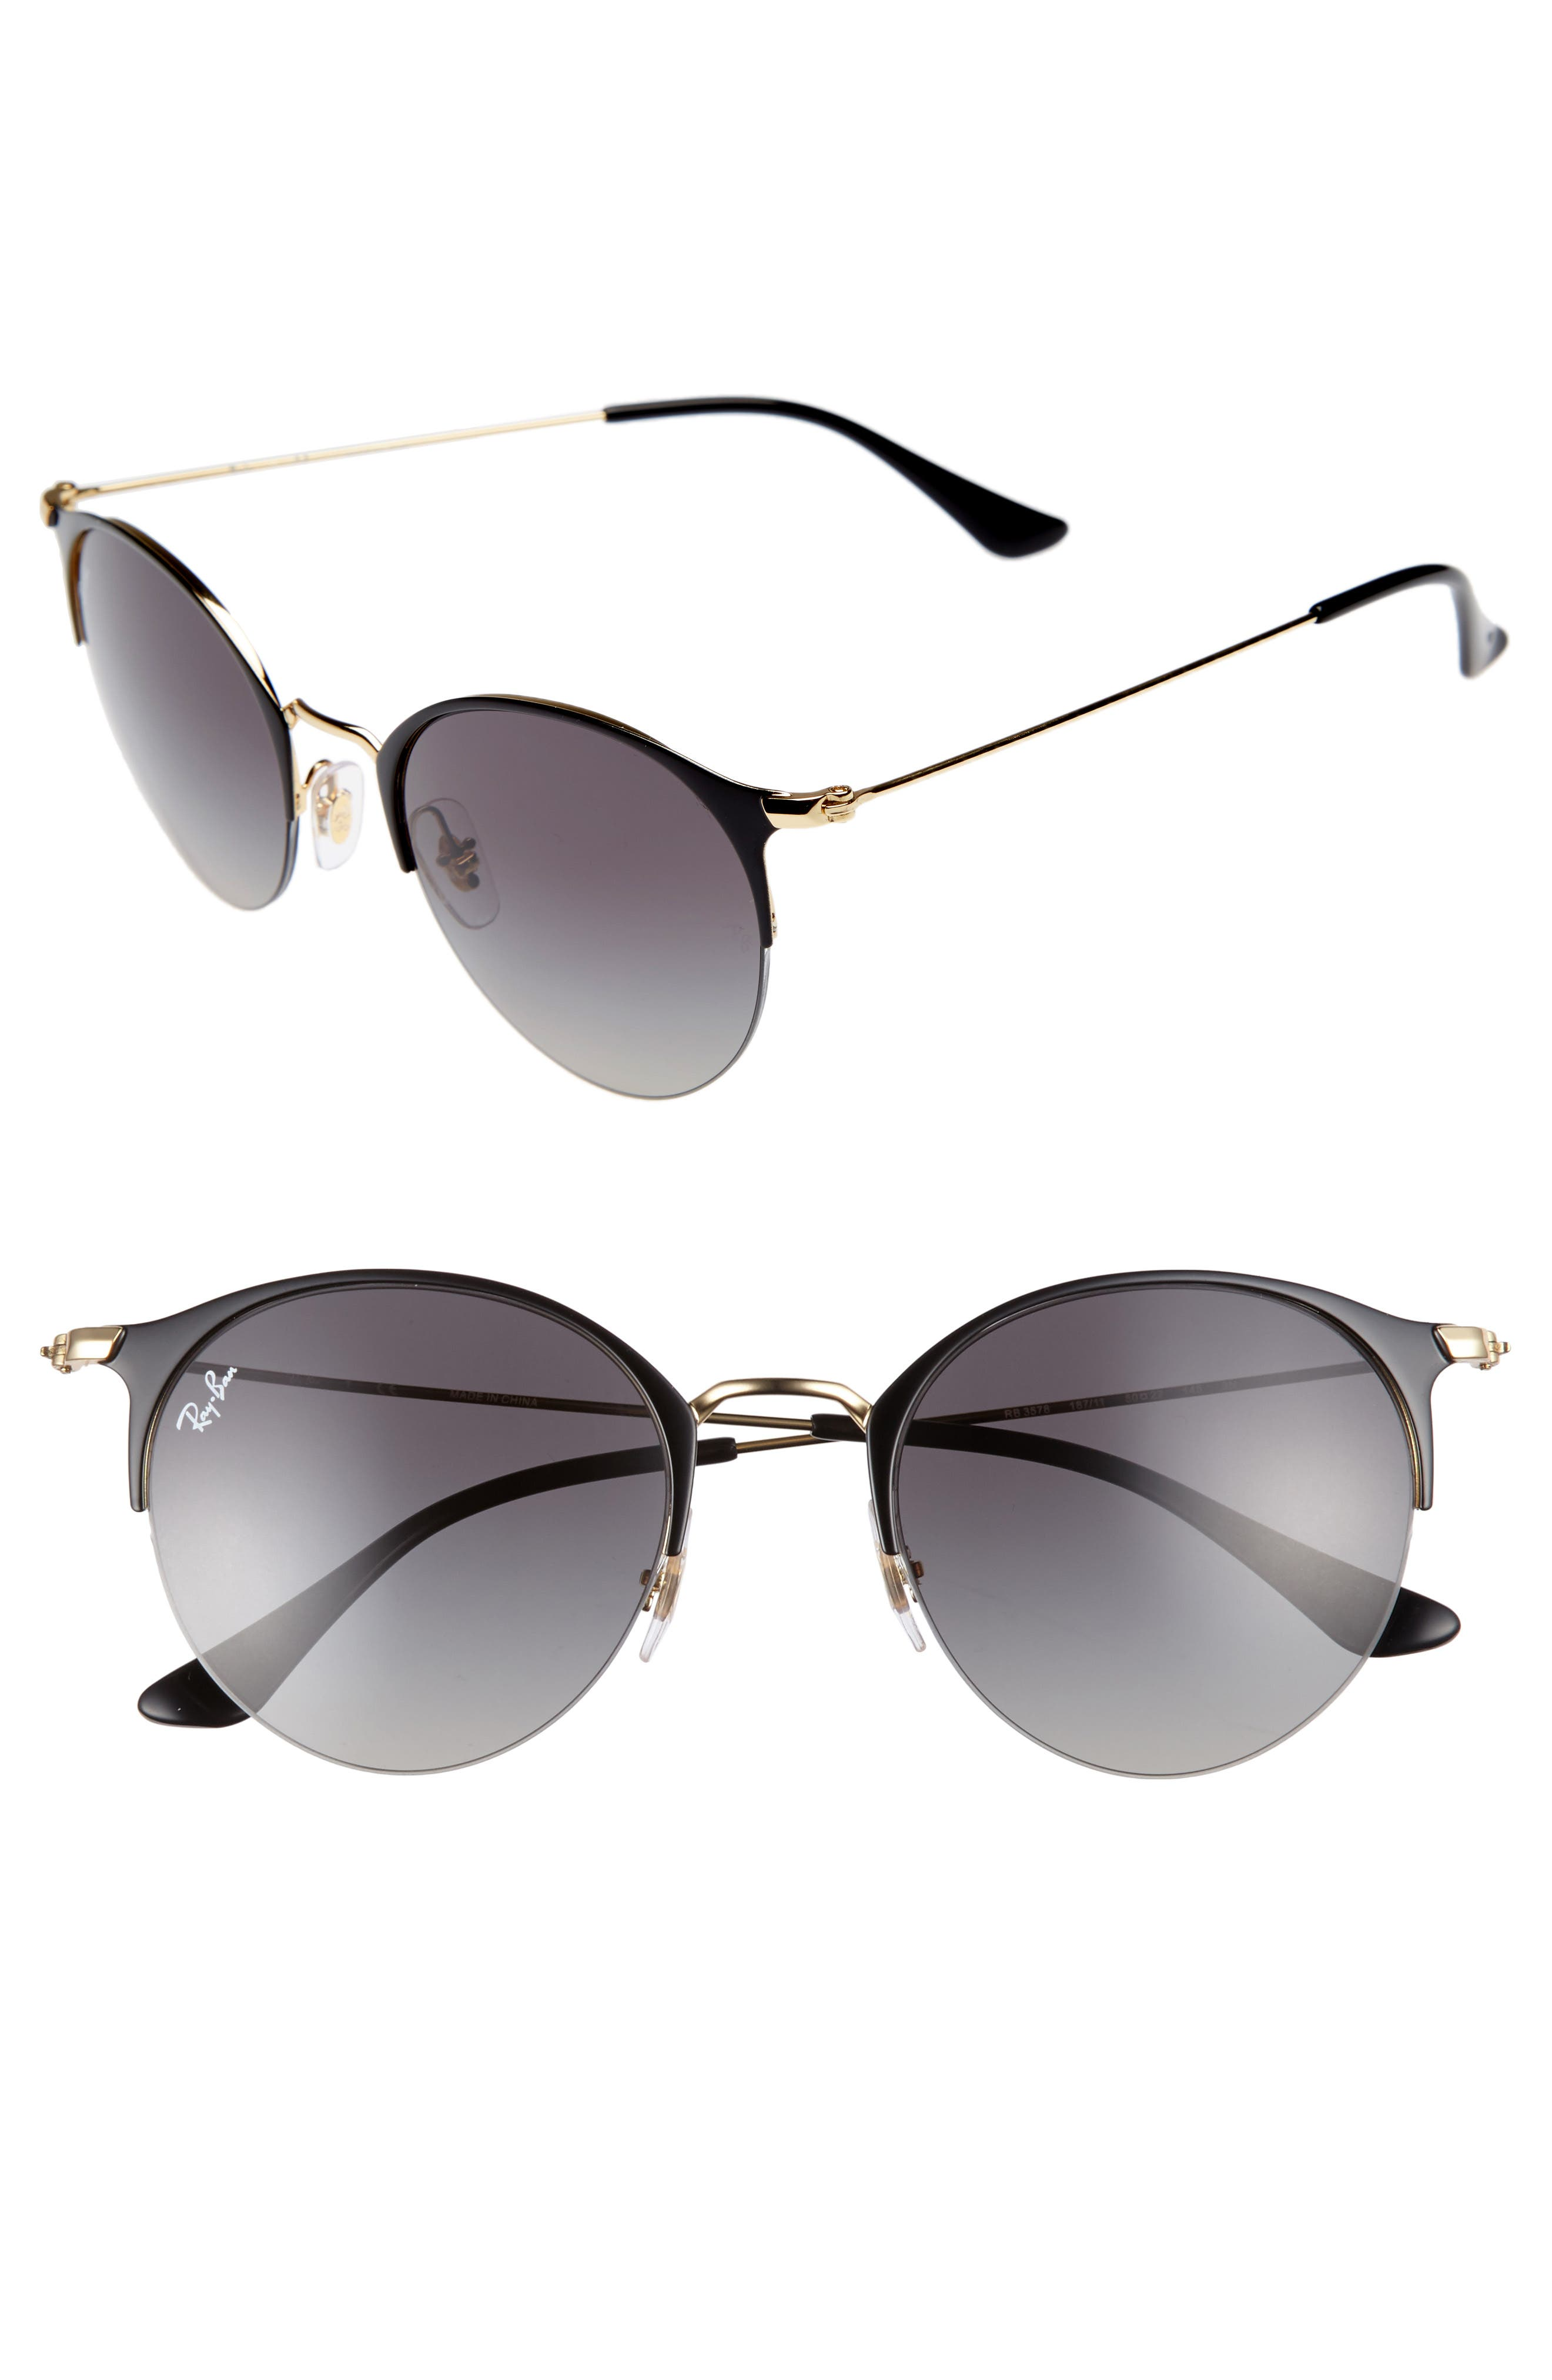 50mm Round Clubmaster Sunglasses,                         Main,                         color, Gold/ Black